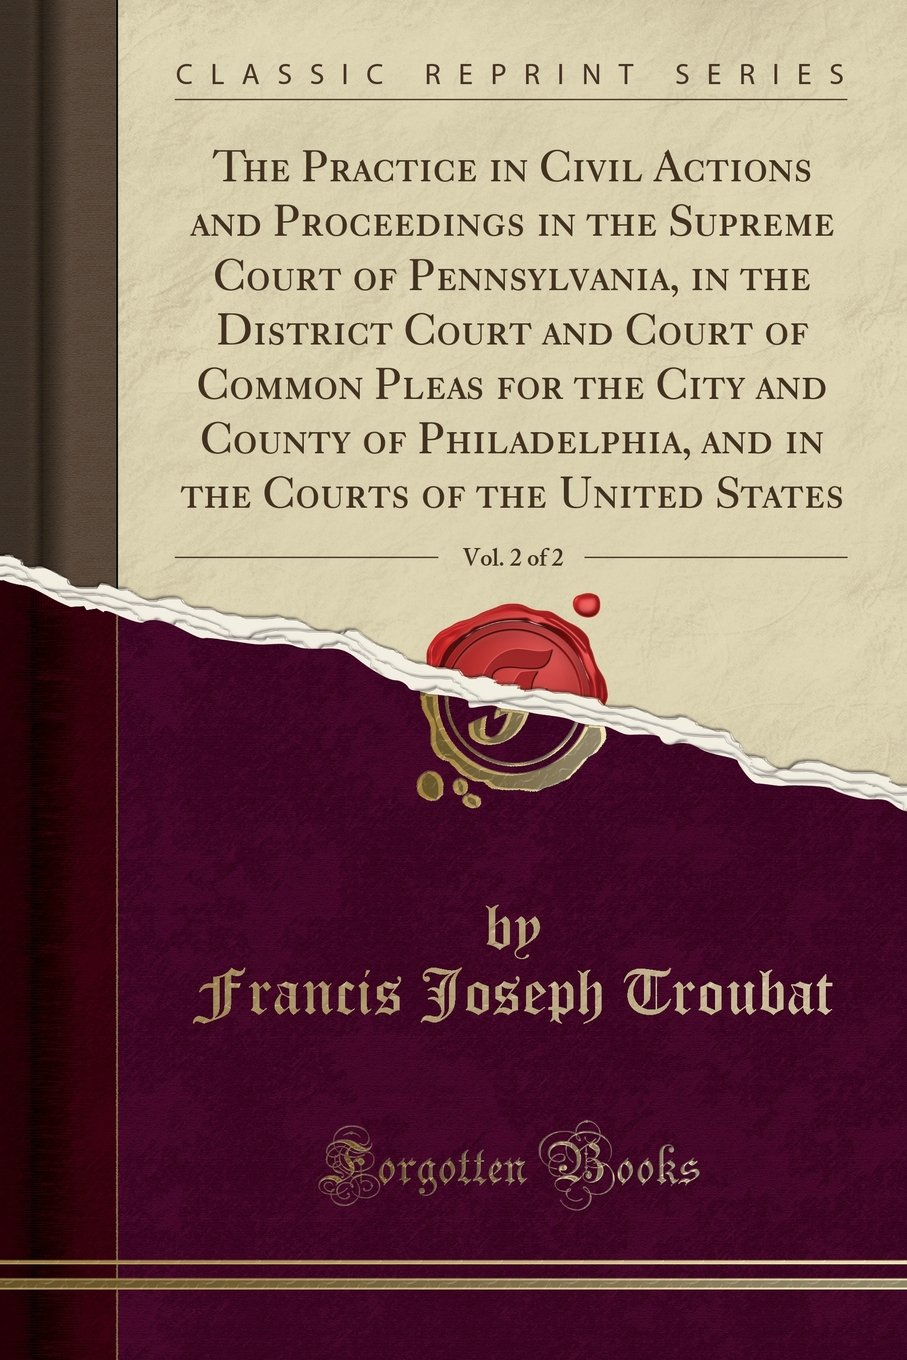 Download The Practice in Civil Actions and Proceedings in the Supreme Court of Pennsylvania, in the District Court and Court of Common Pleas for the City and ... United States, Vol. 2 of 2 (Classic Reprint) ebook